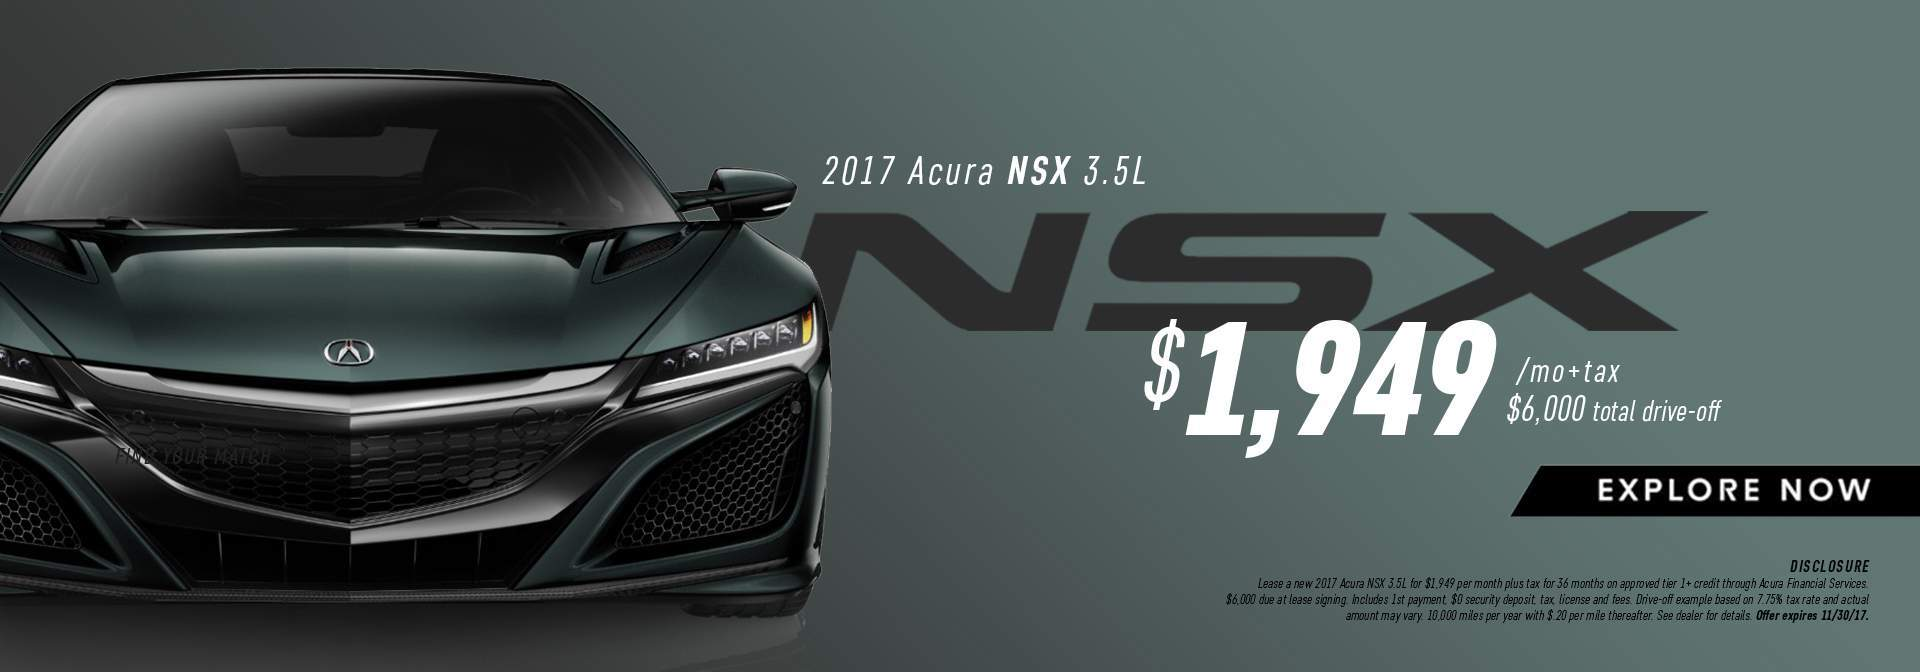 2017 Acura NSX Lease Offer